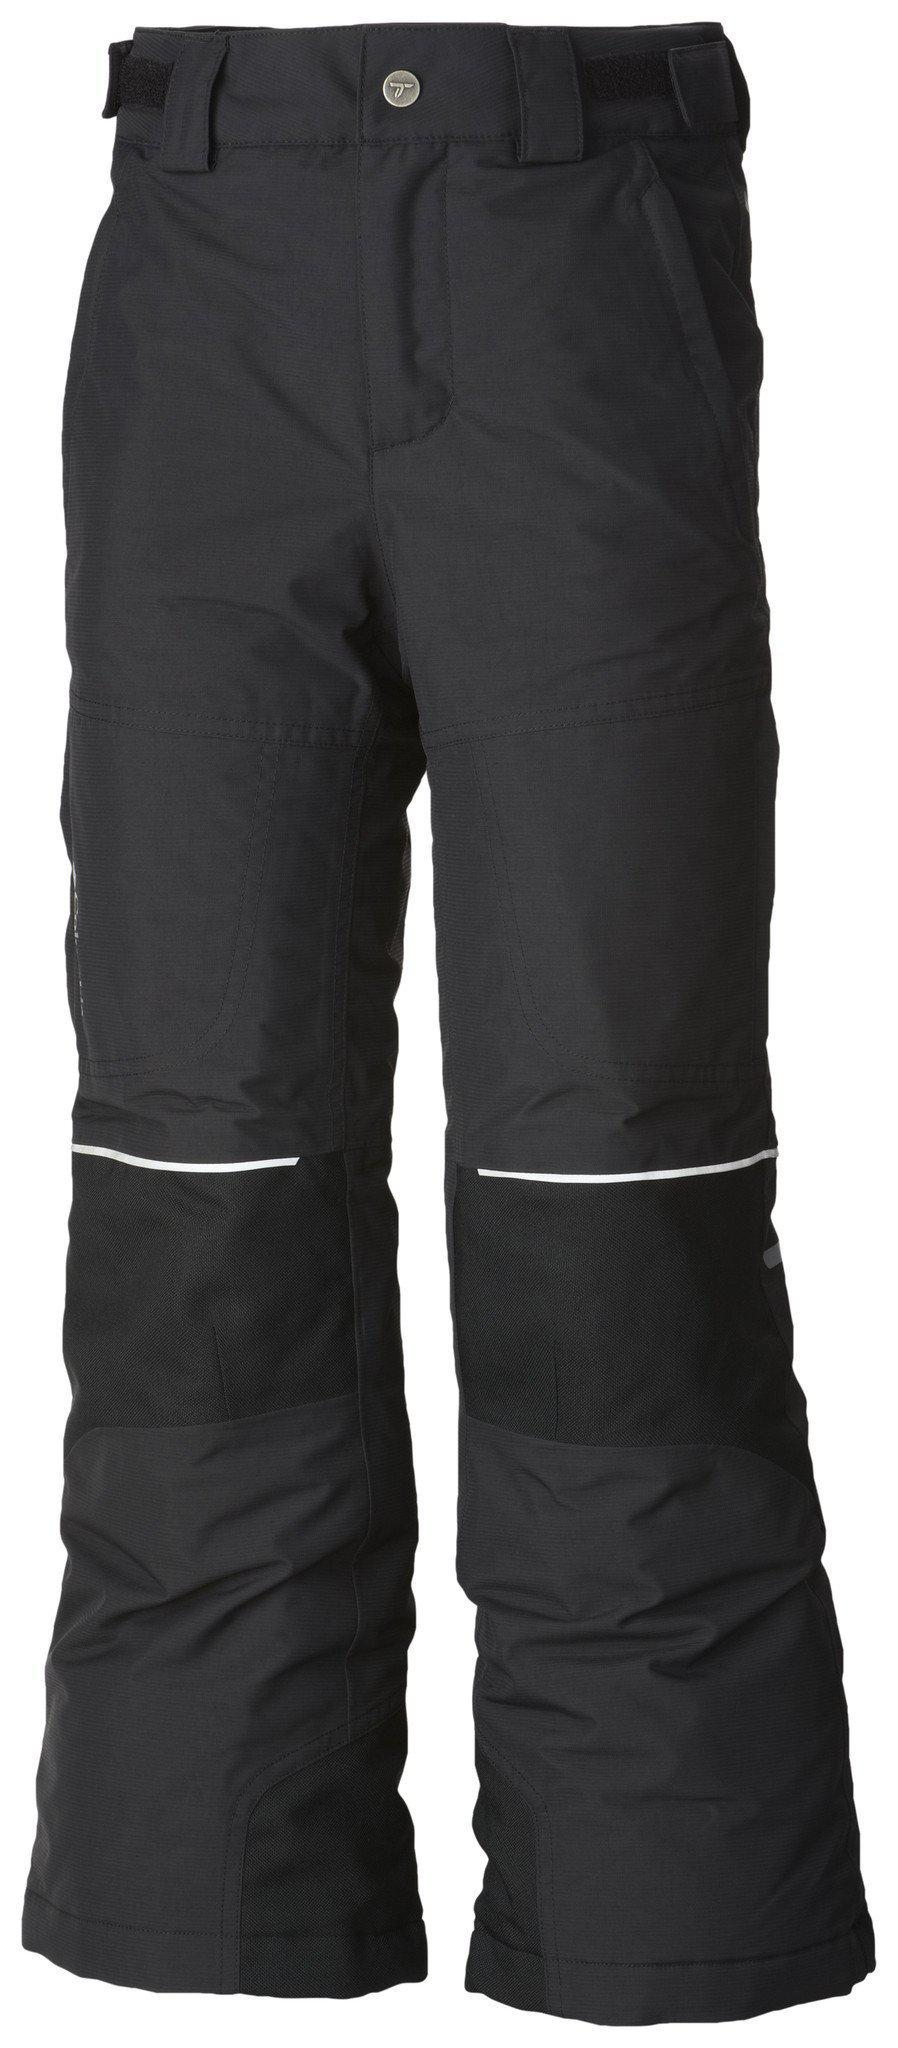 Kinder Skihose SHREDDIN' von Columbia-Boy's Pants-Columbia-L / EU152-SkiGala